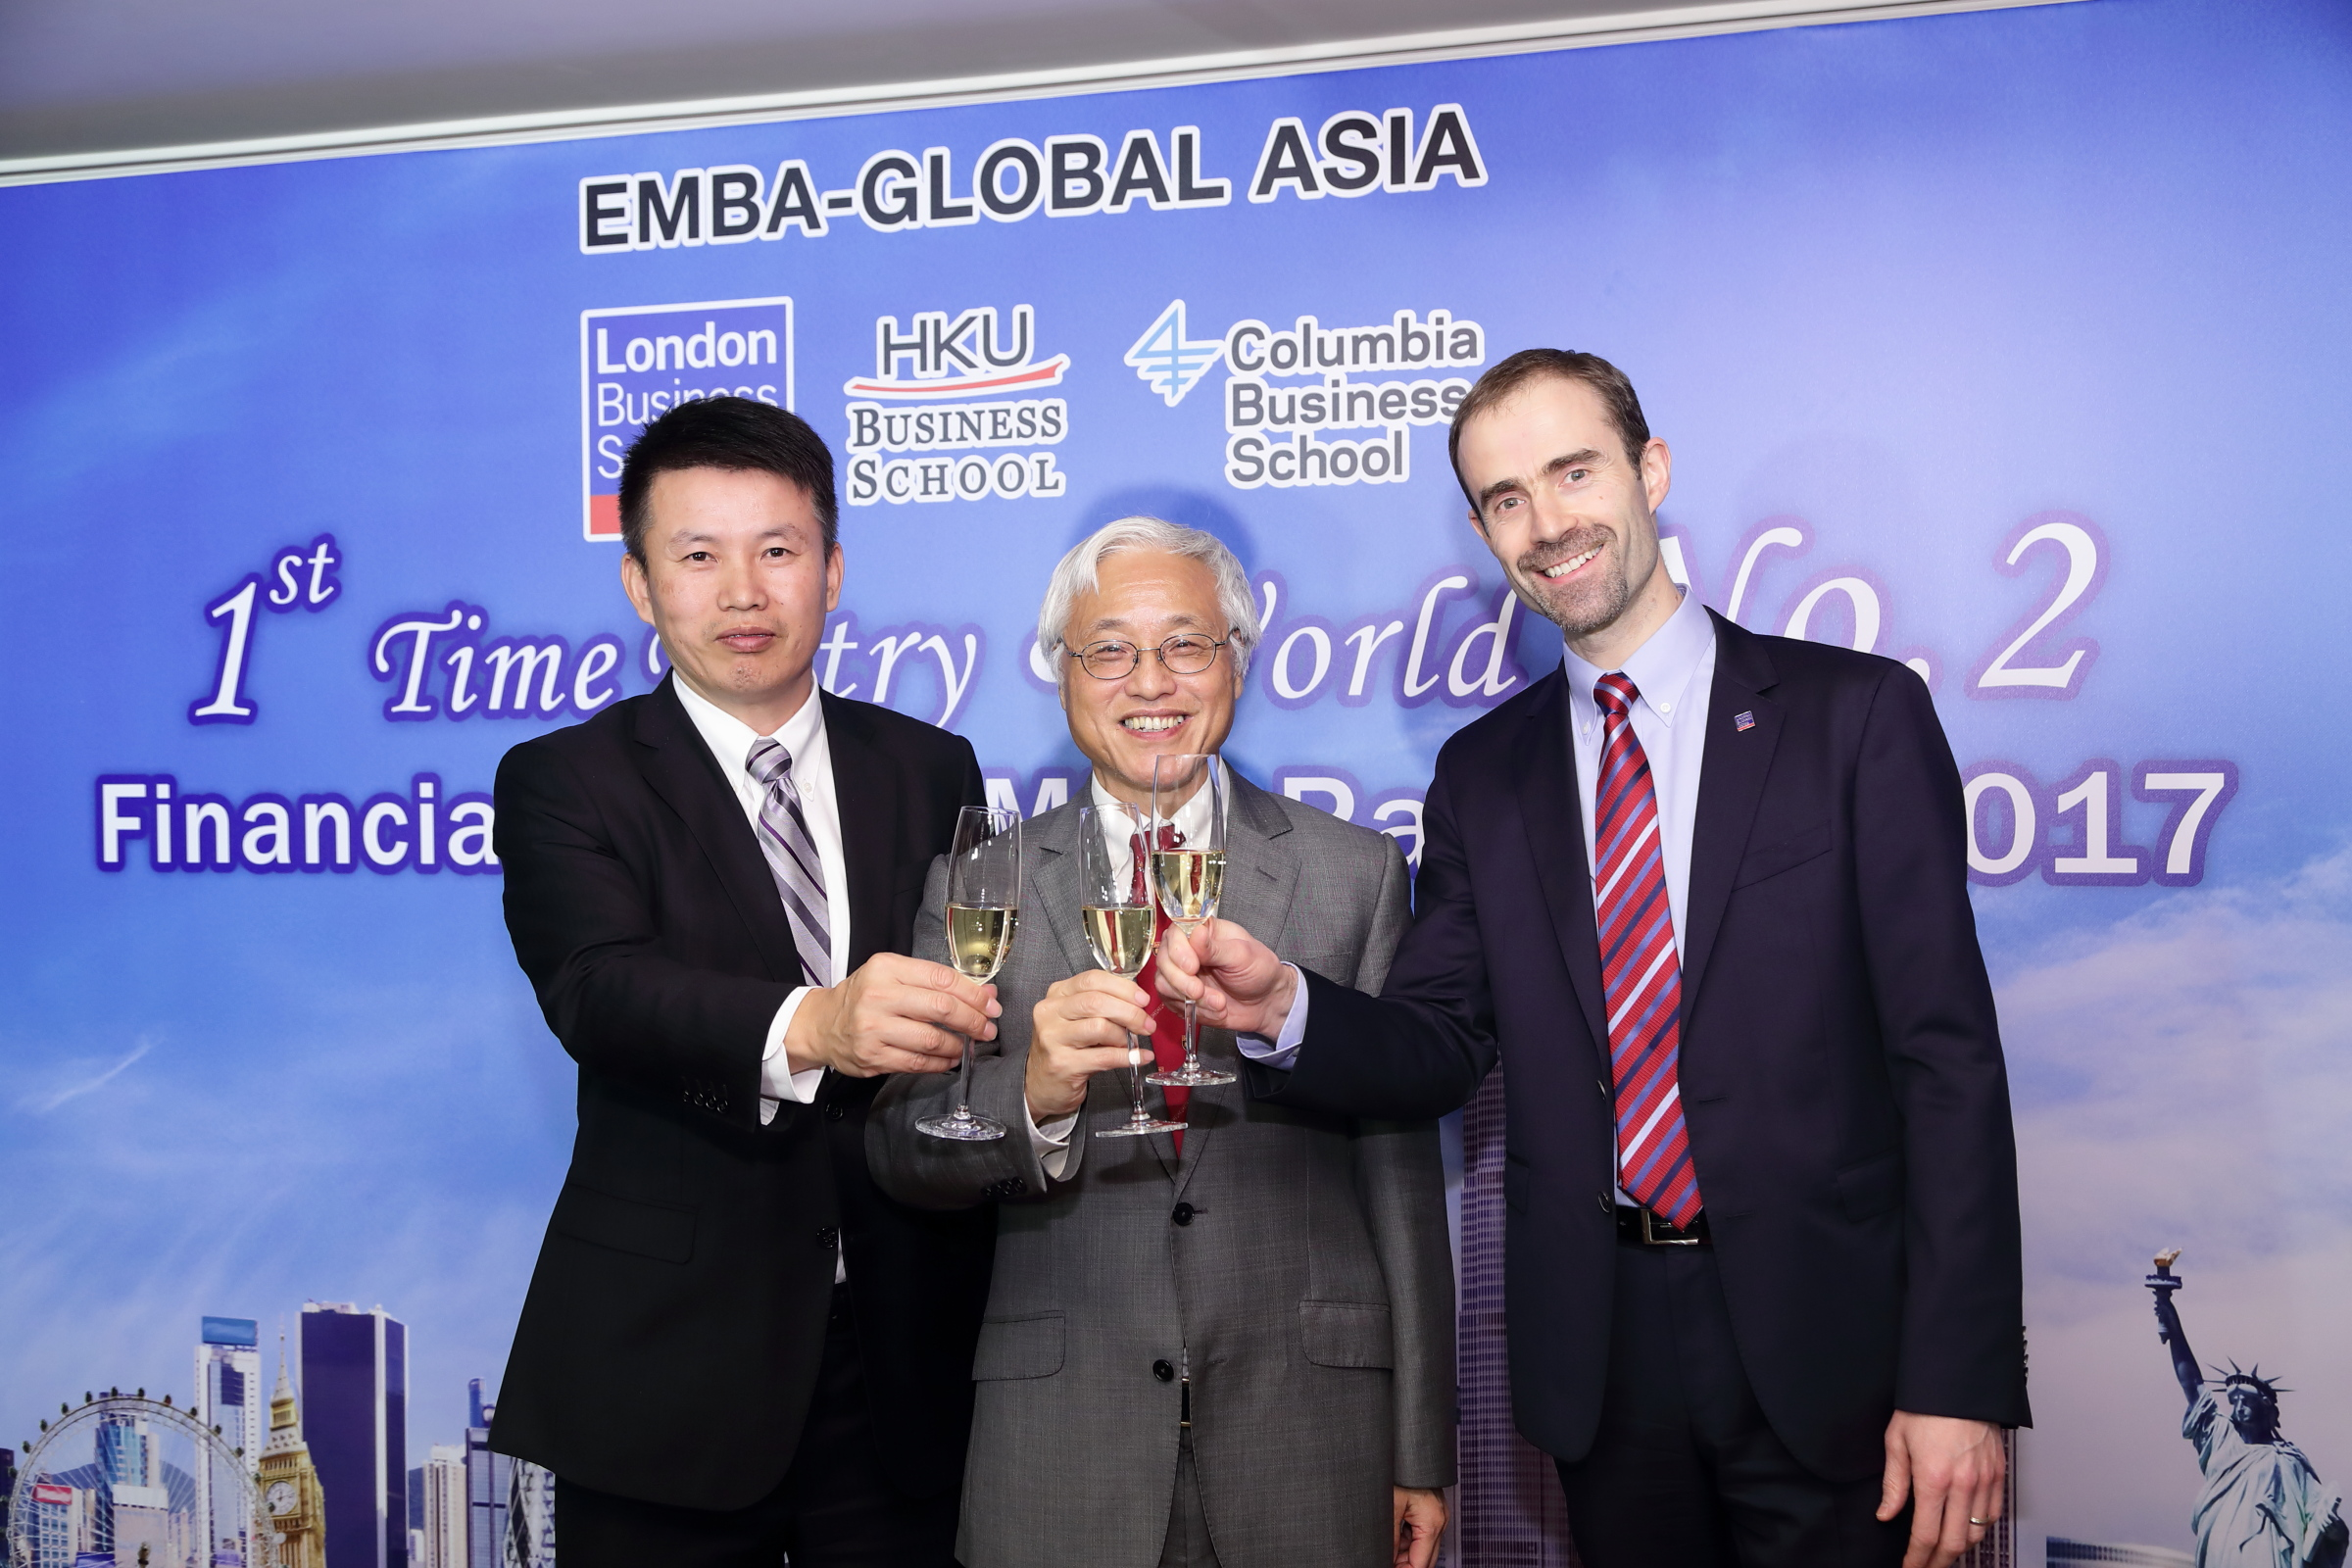 EMBA-Global Asia programme awarded second in the World in its first ever ranking by Financial Times